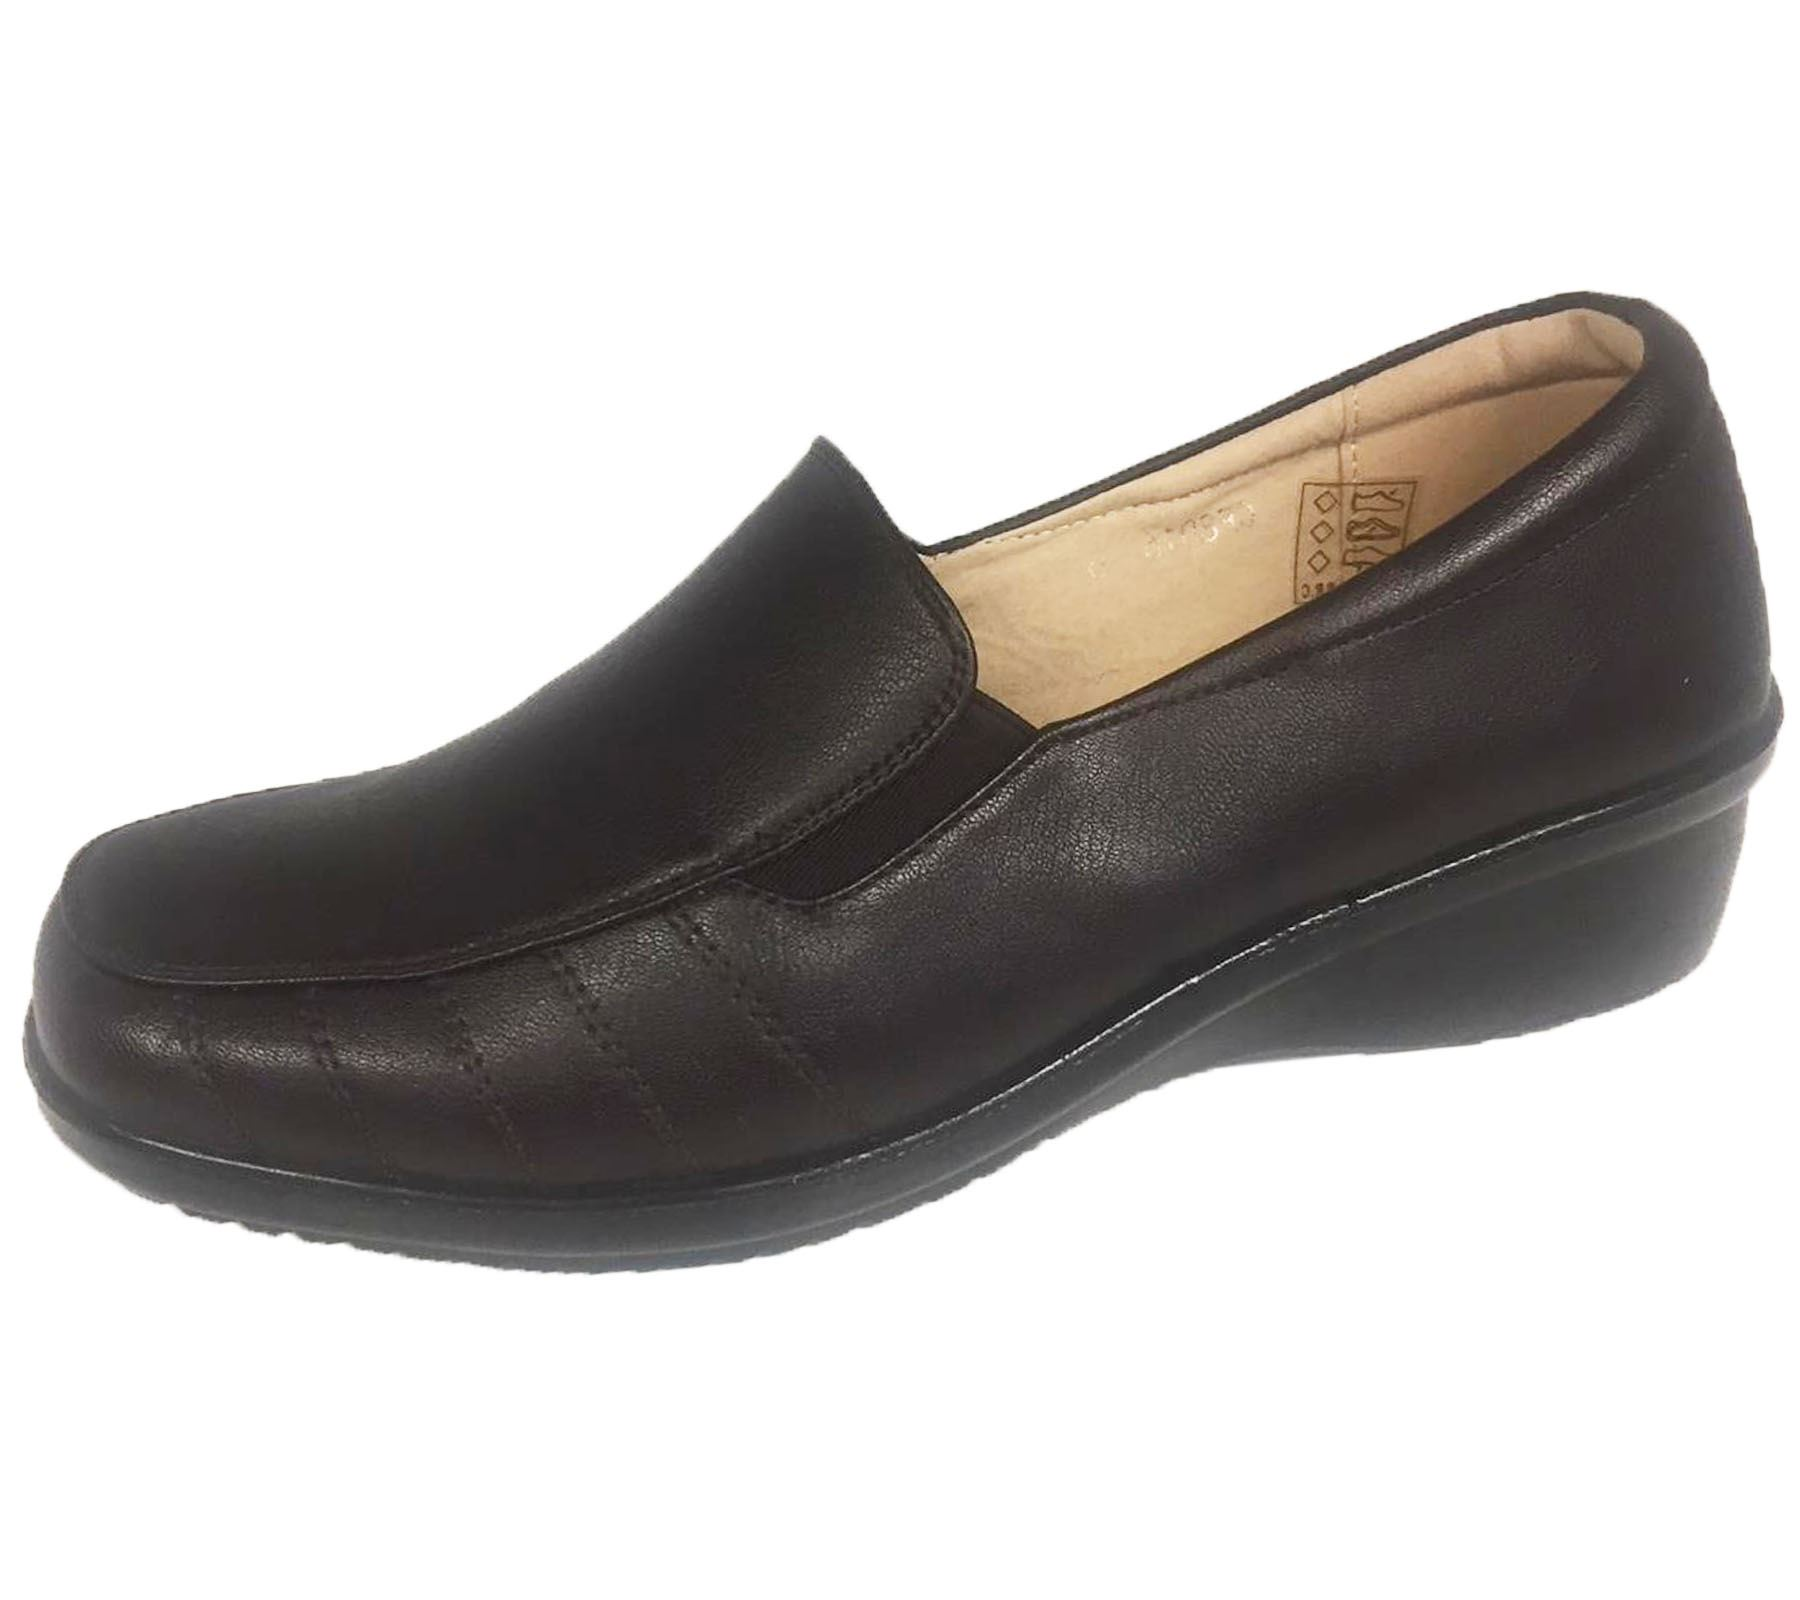 Ladies-Loafer-Moccasin-Womens-Casual-Comfort-Walk-Pumps-Slip-On-Shoes thumbnail 13